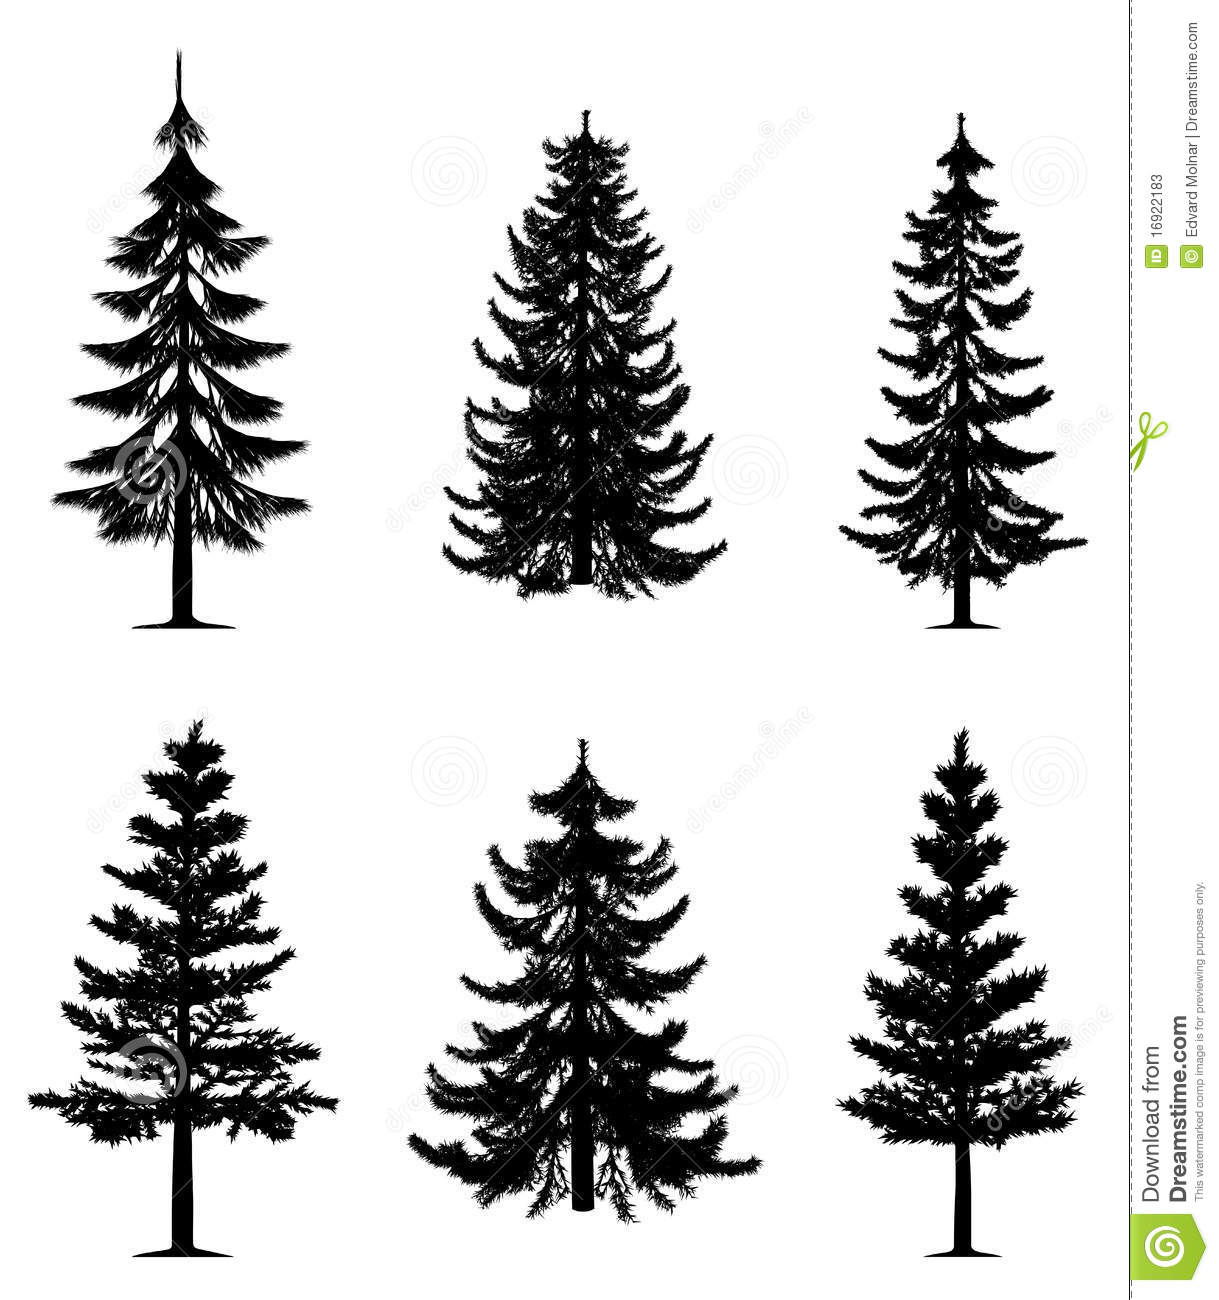 Drawn pine tree vector Photos Pine Stock clipart Conifer